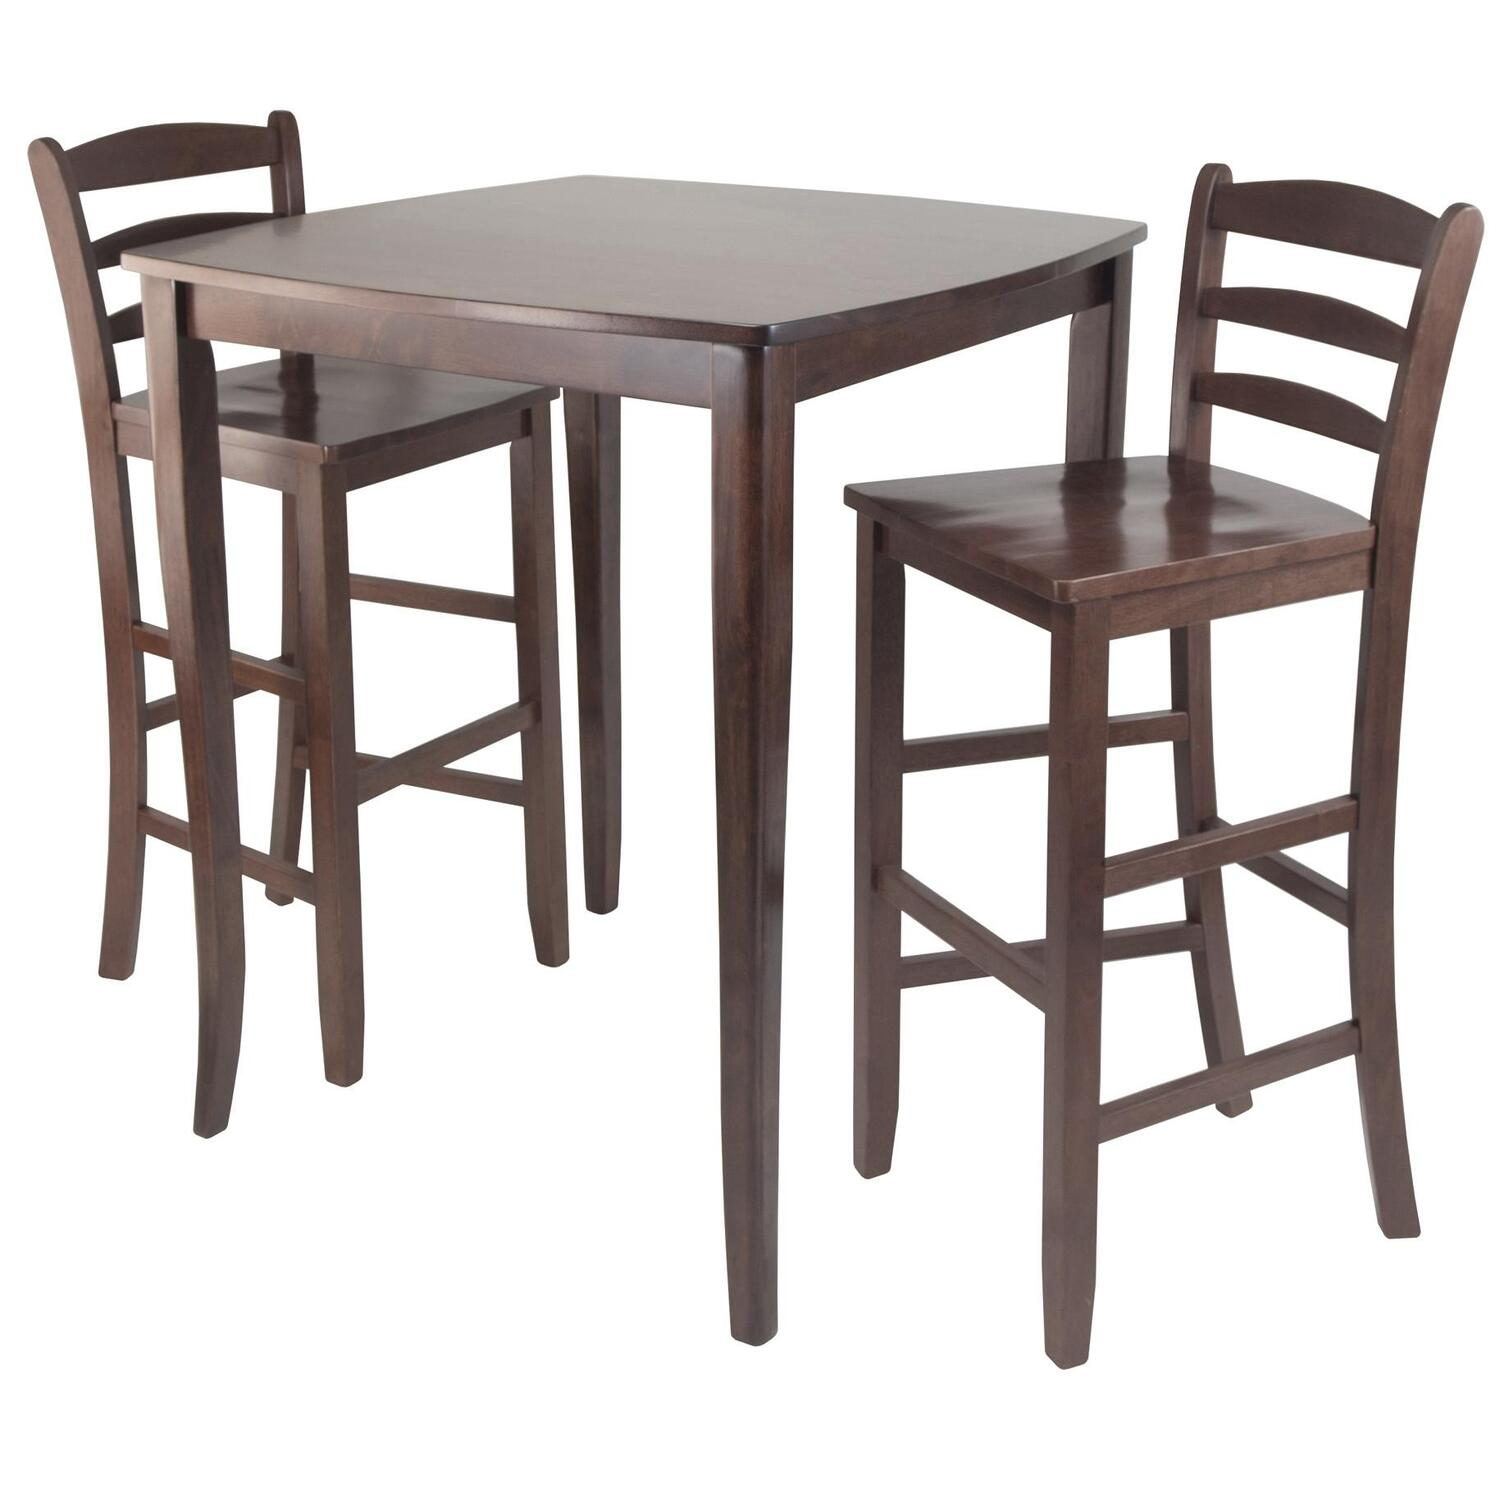 3pc Inglewood High Pub Dining Table With Ladder Back Stool